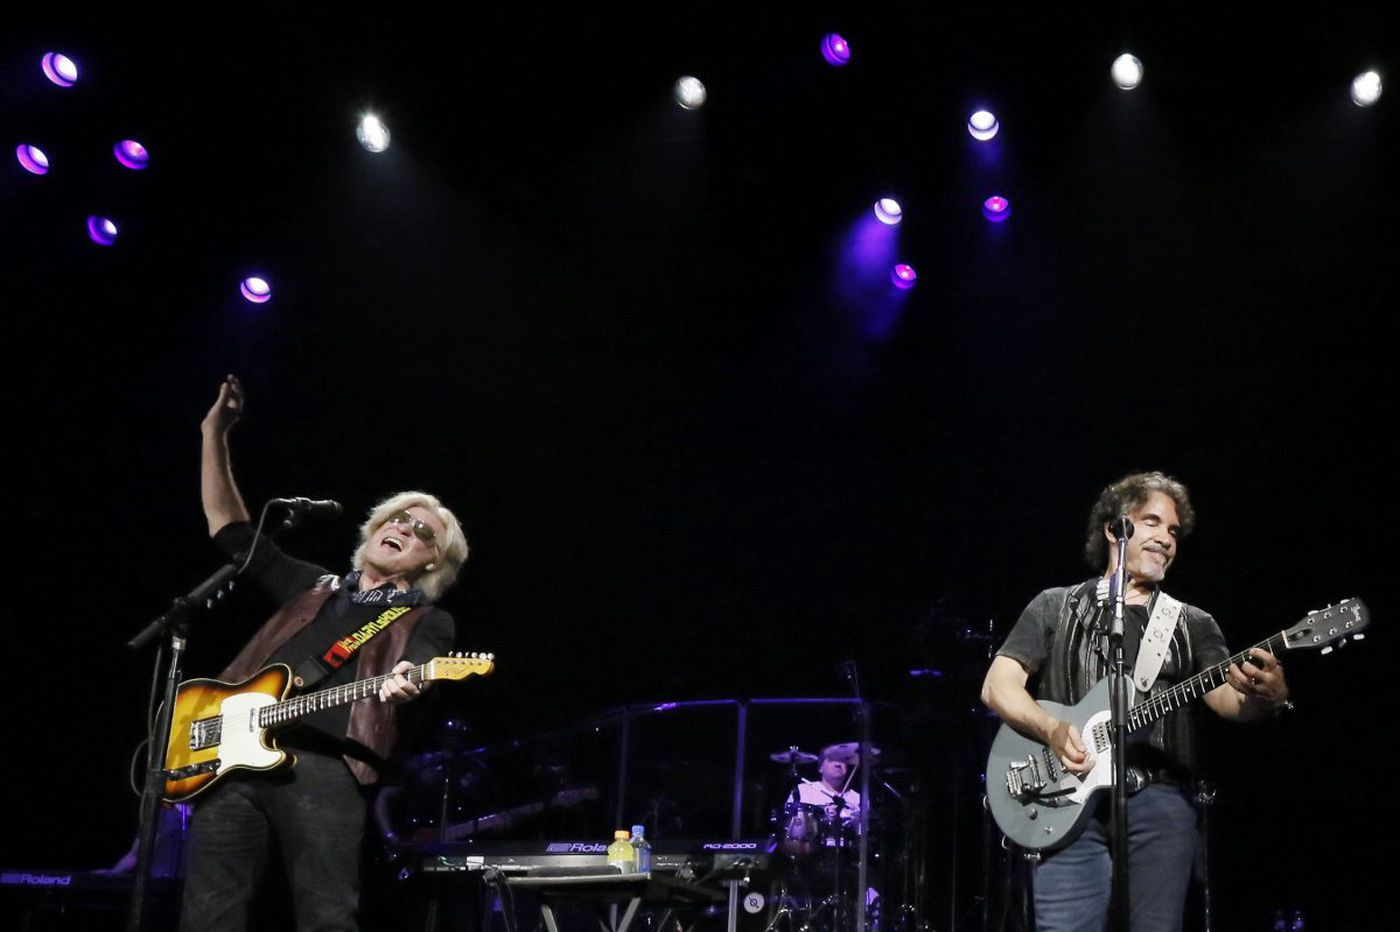 Hall & Oates' Hoagie Nation returns to Festival Pier for its second year